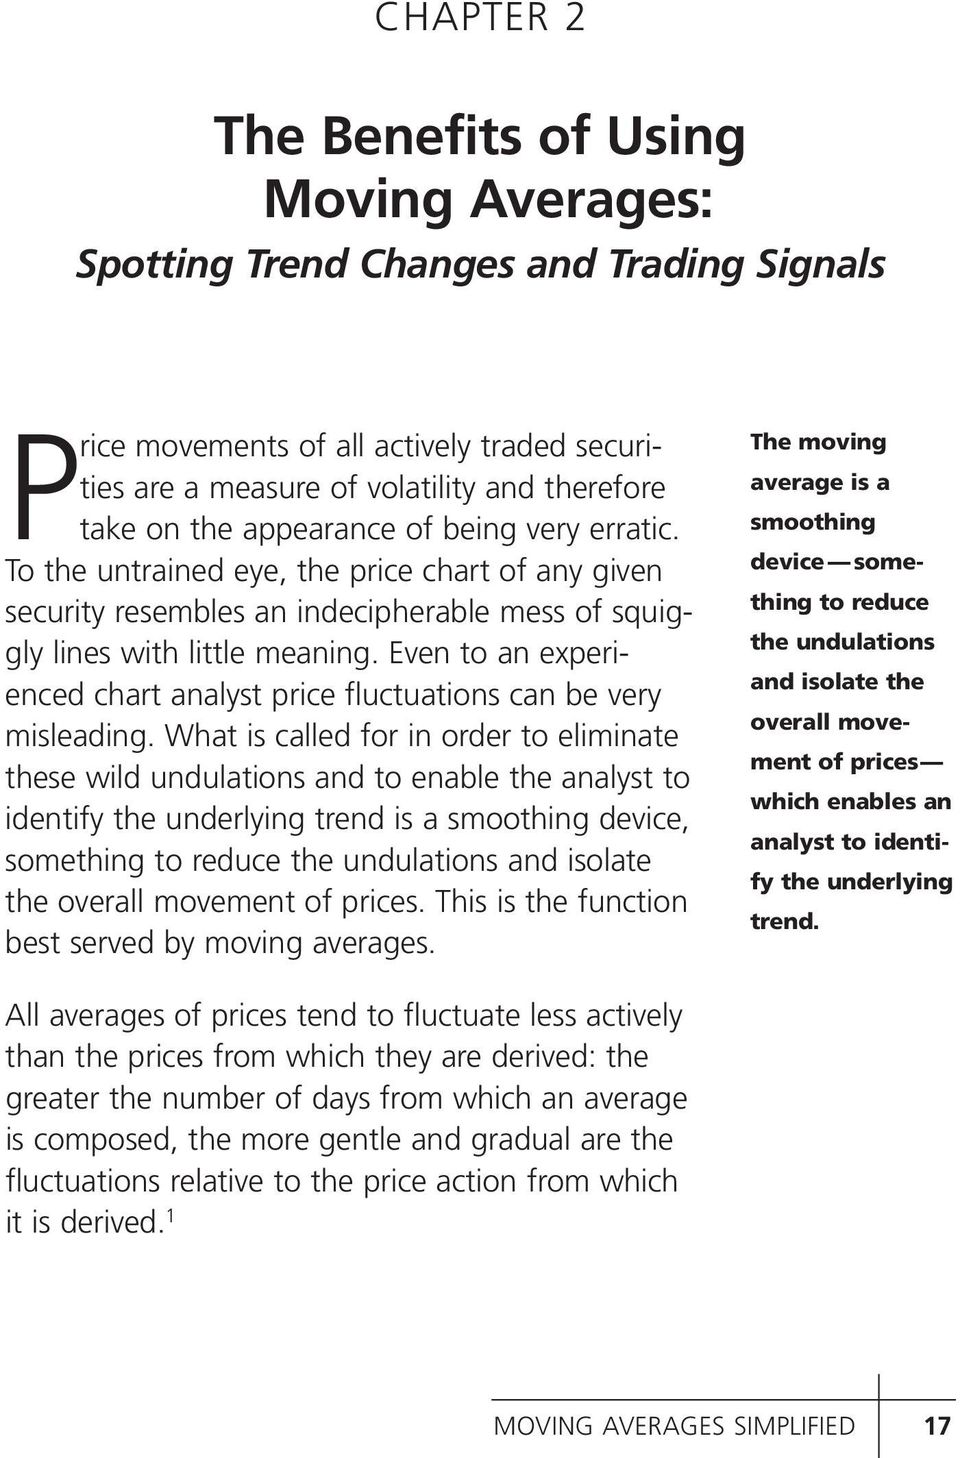 Moving Averages Simplified Pdf Free Download